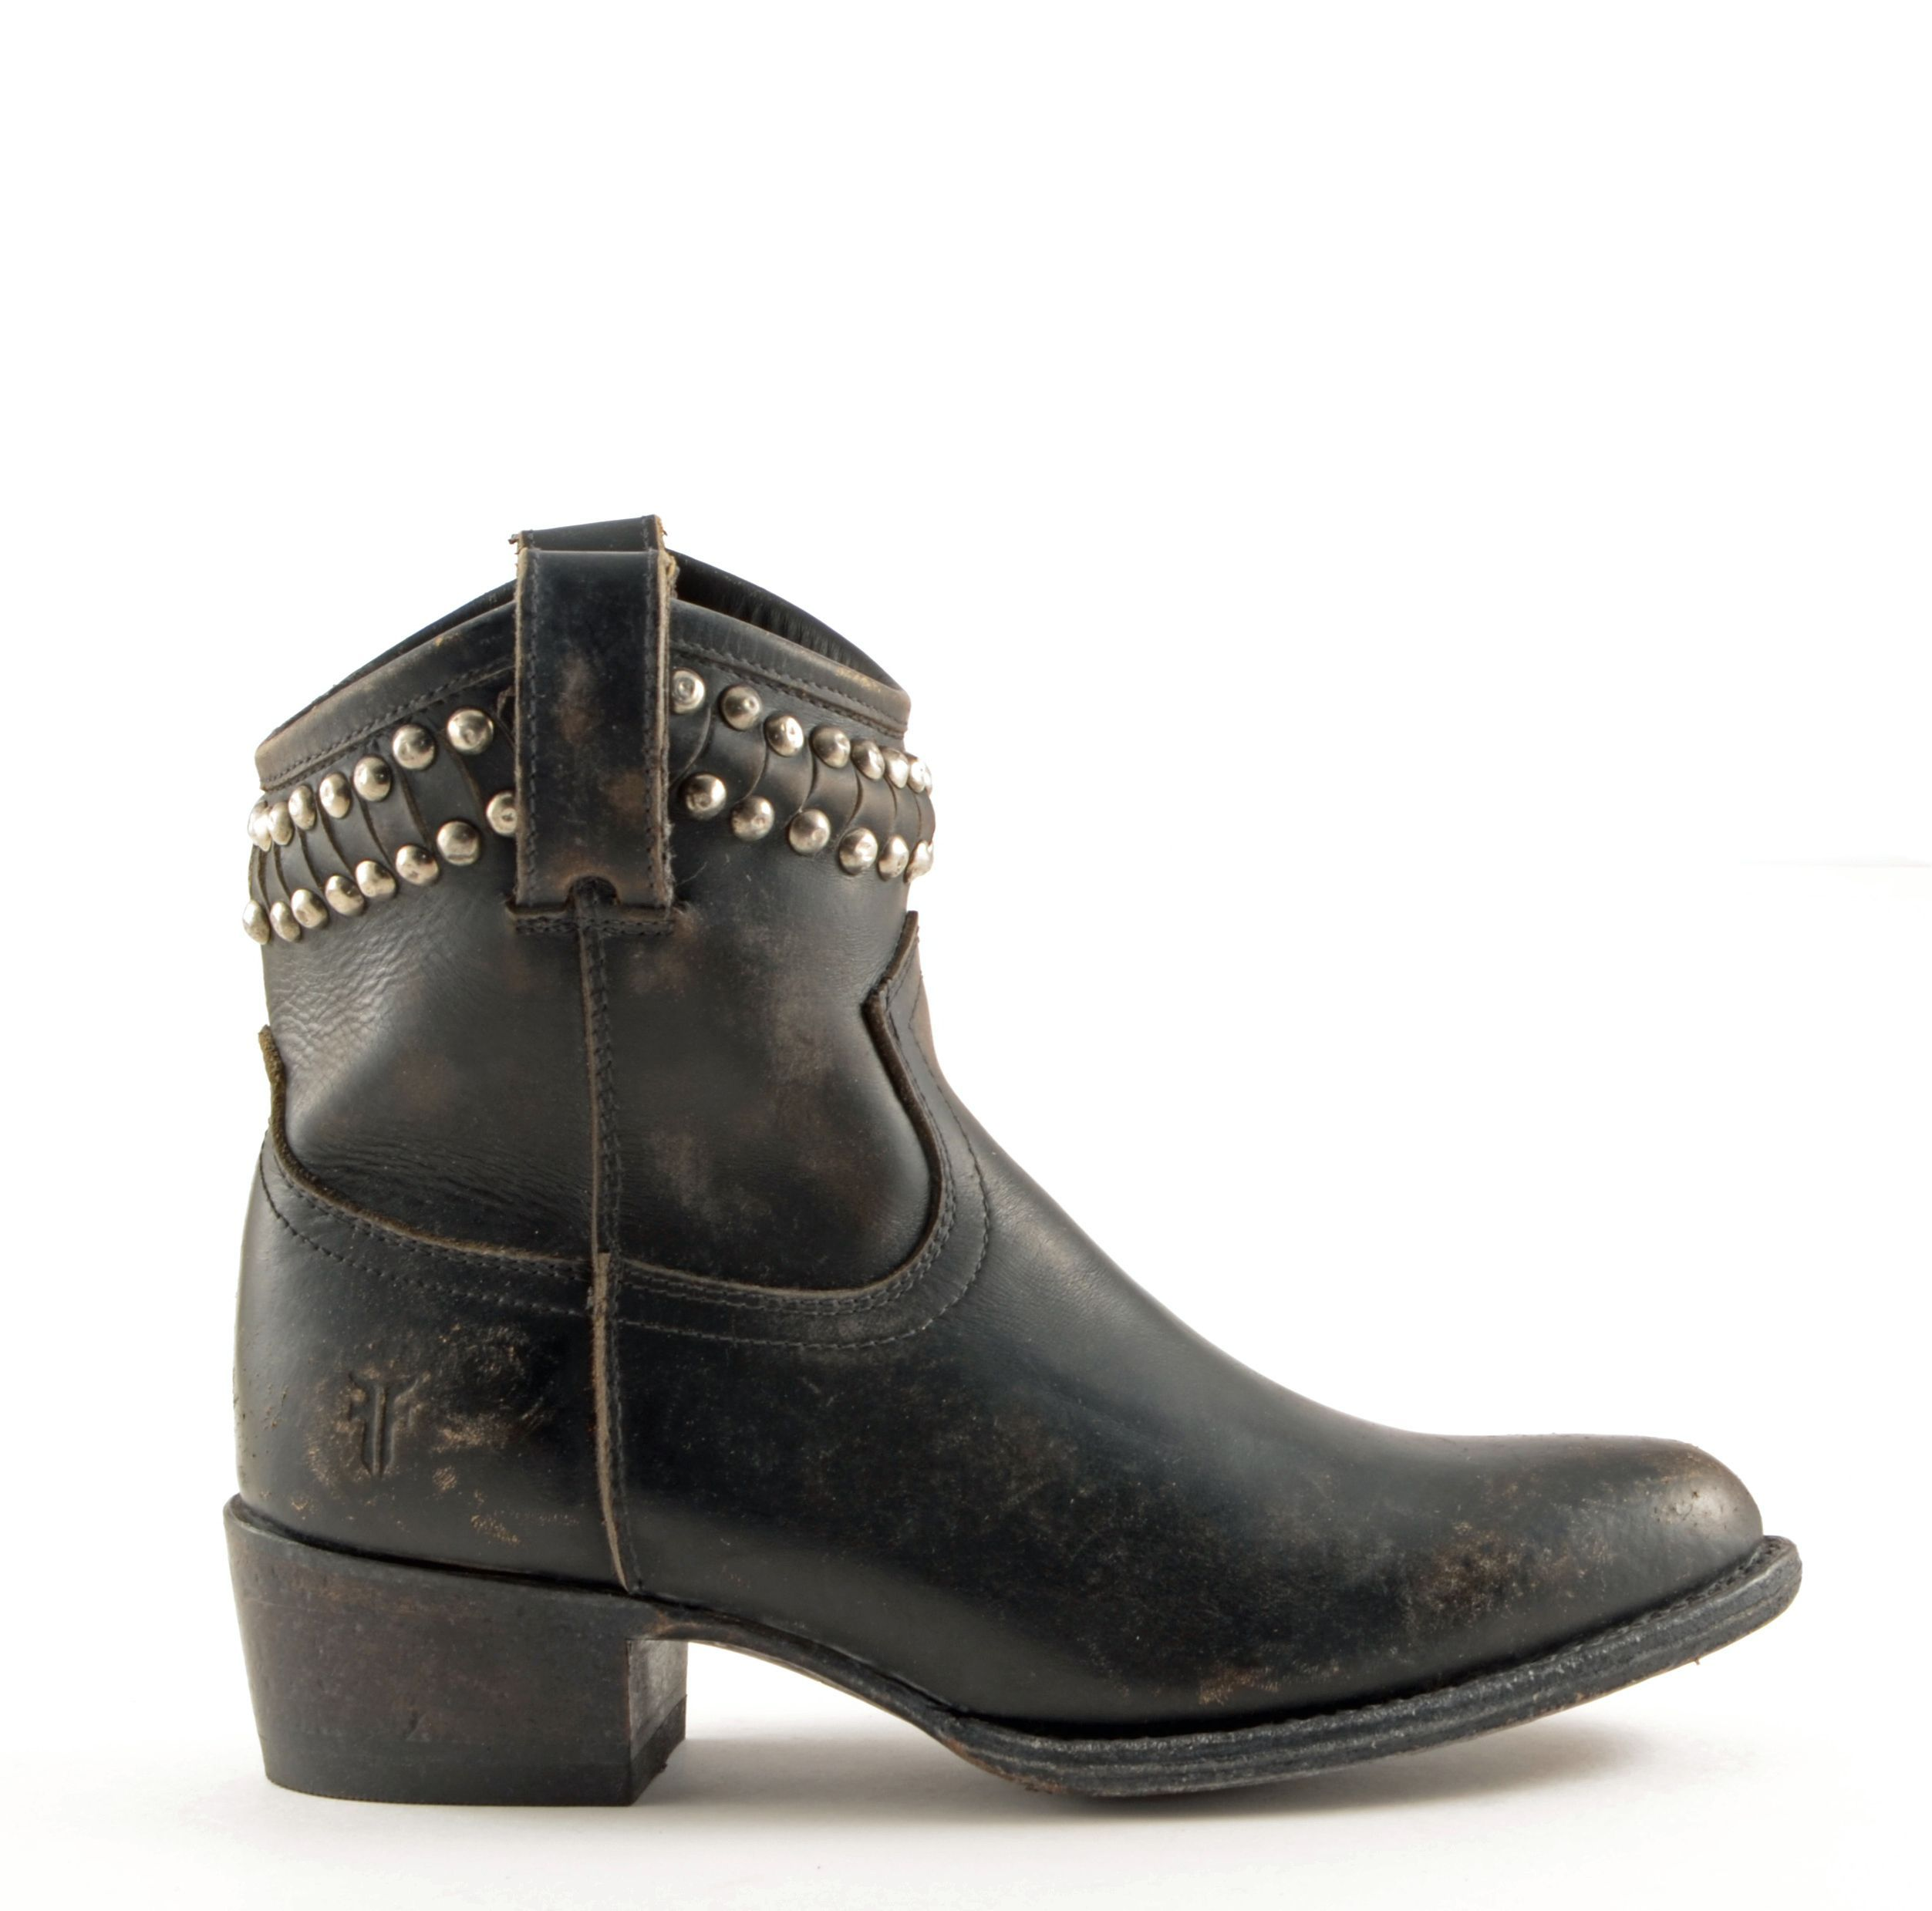 95131e406463 Frye Black Ankle Boots Style  Womens Frye Diana Cut Studded Short Boots  Black  77978blk